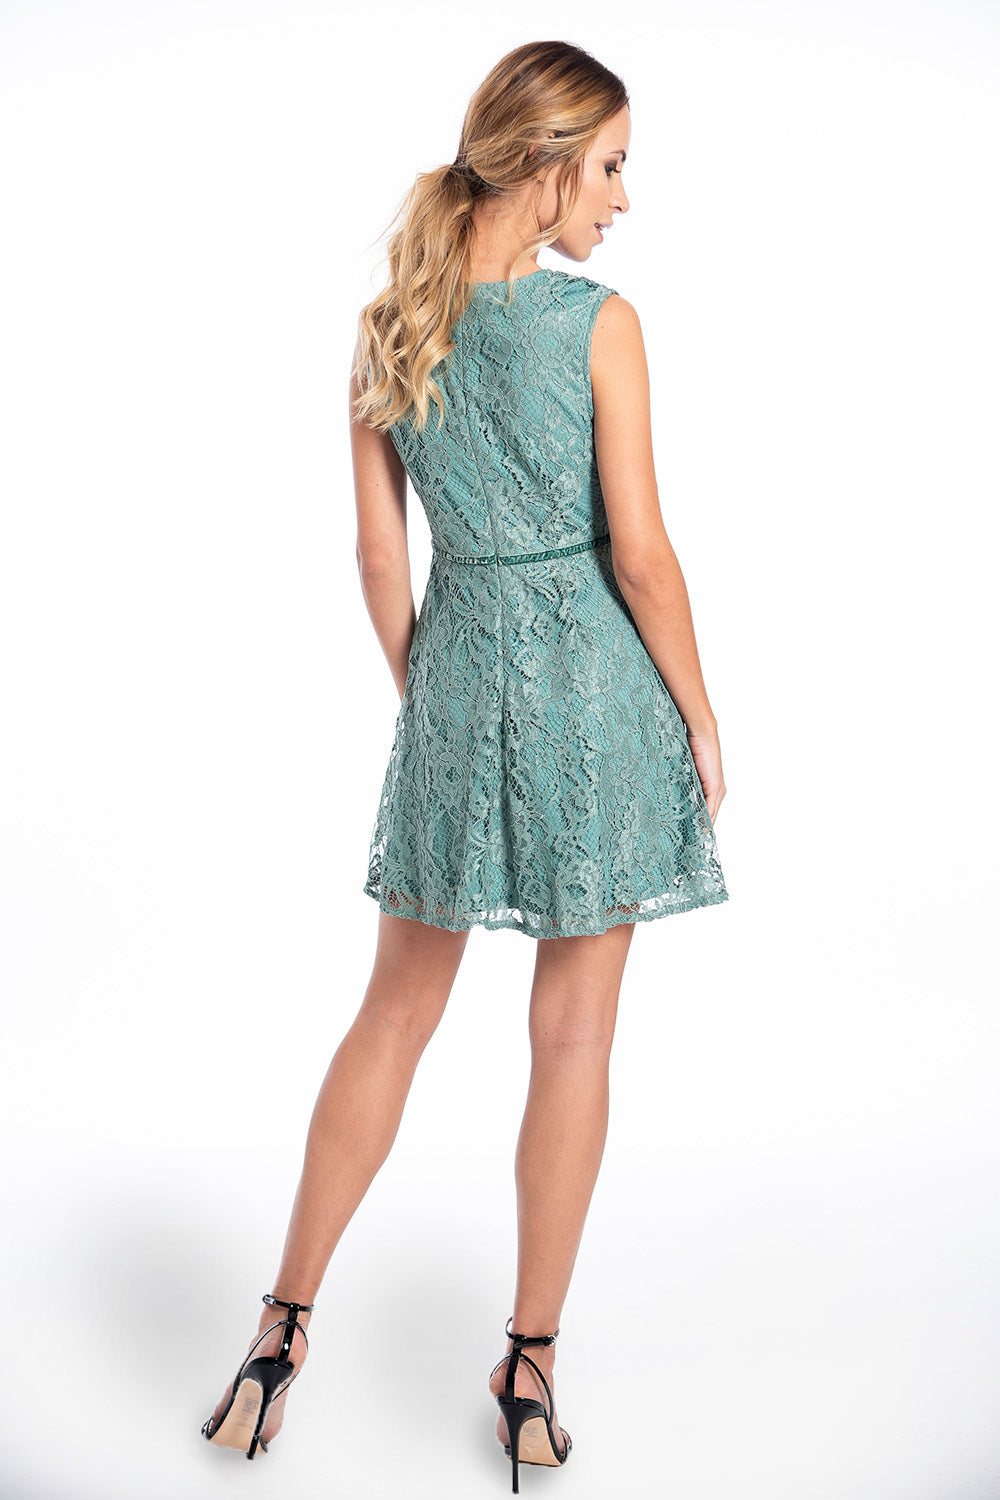 Glamorous lace skate dress with back zip and velvet detail